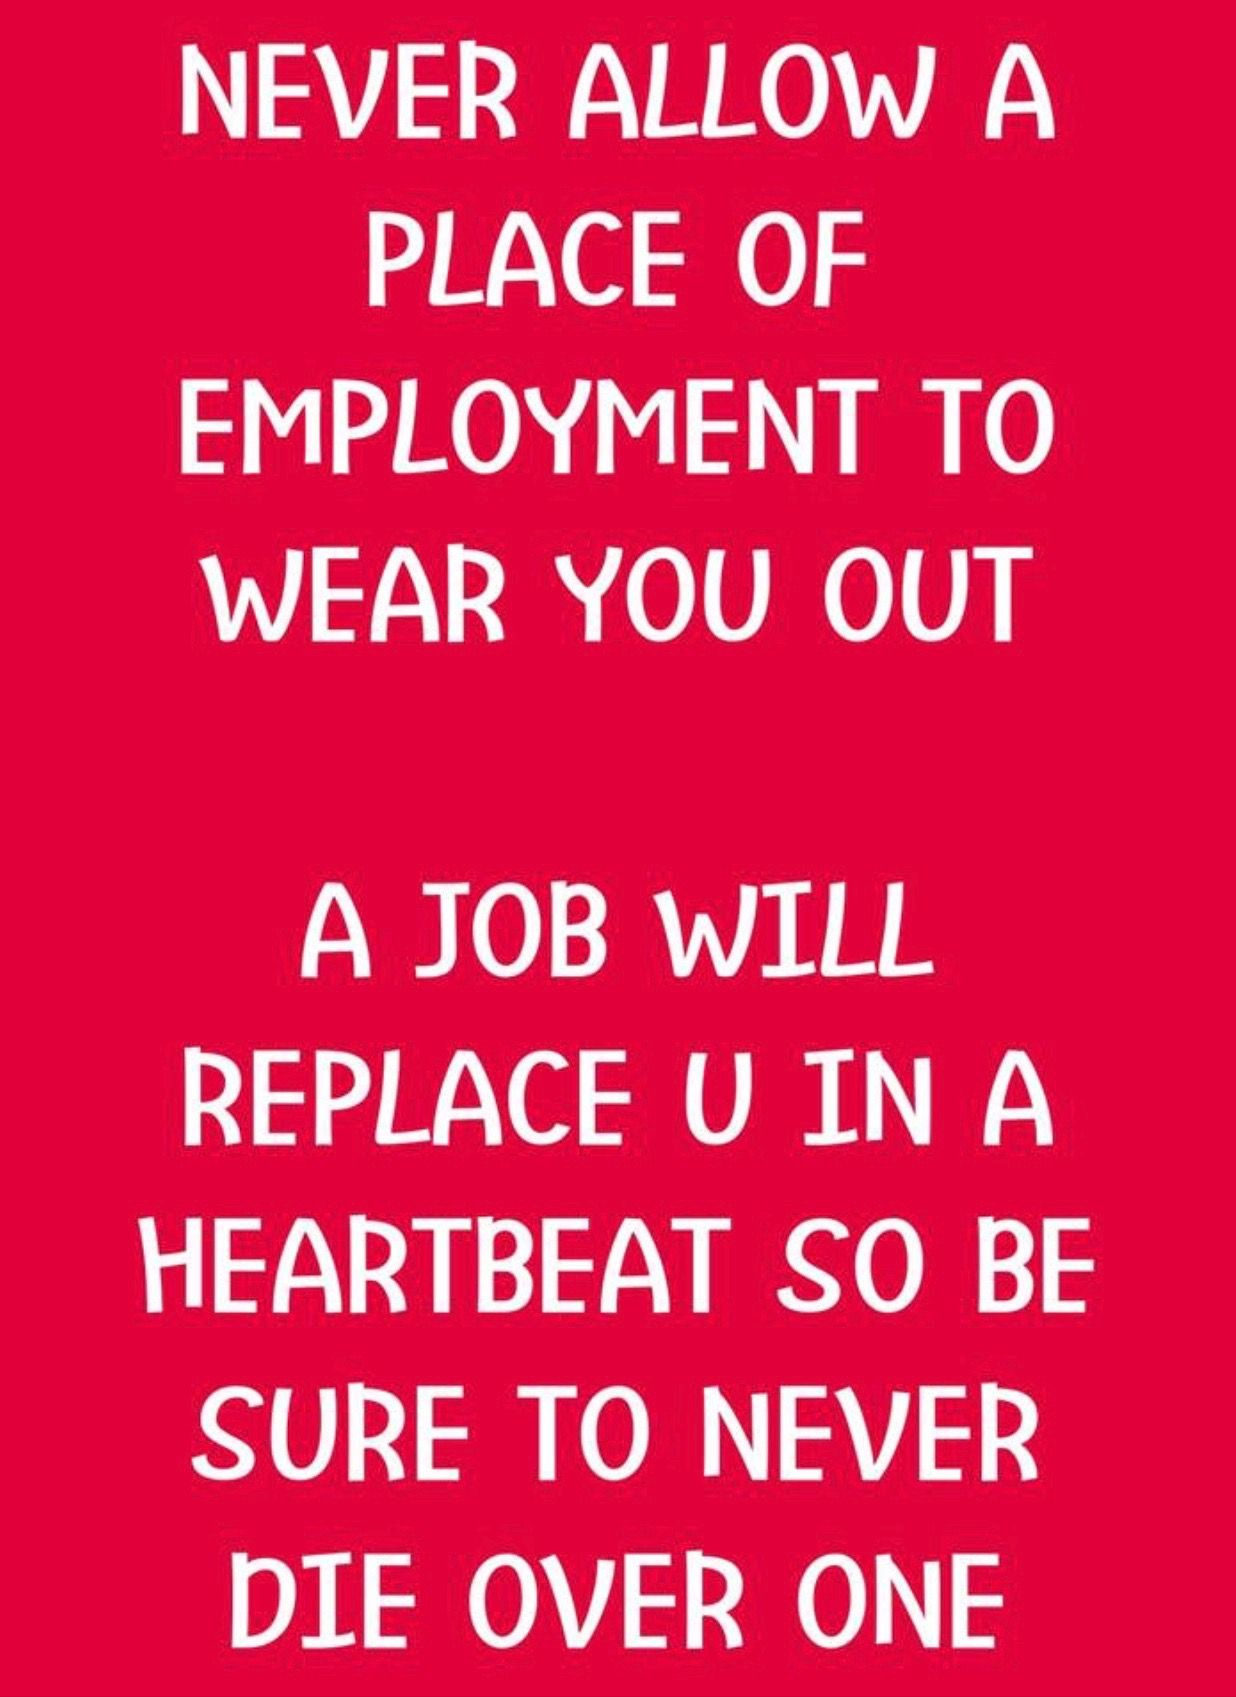 Pin By Jodi Ann On Funny Stuff And Quotes Job Quotes Work Quotes Motivational Quotes